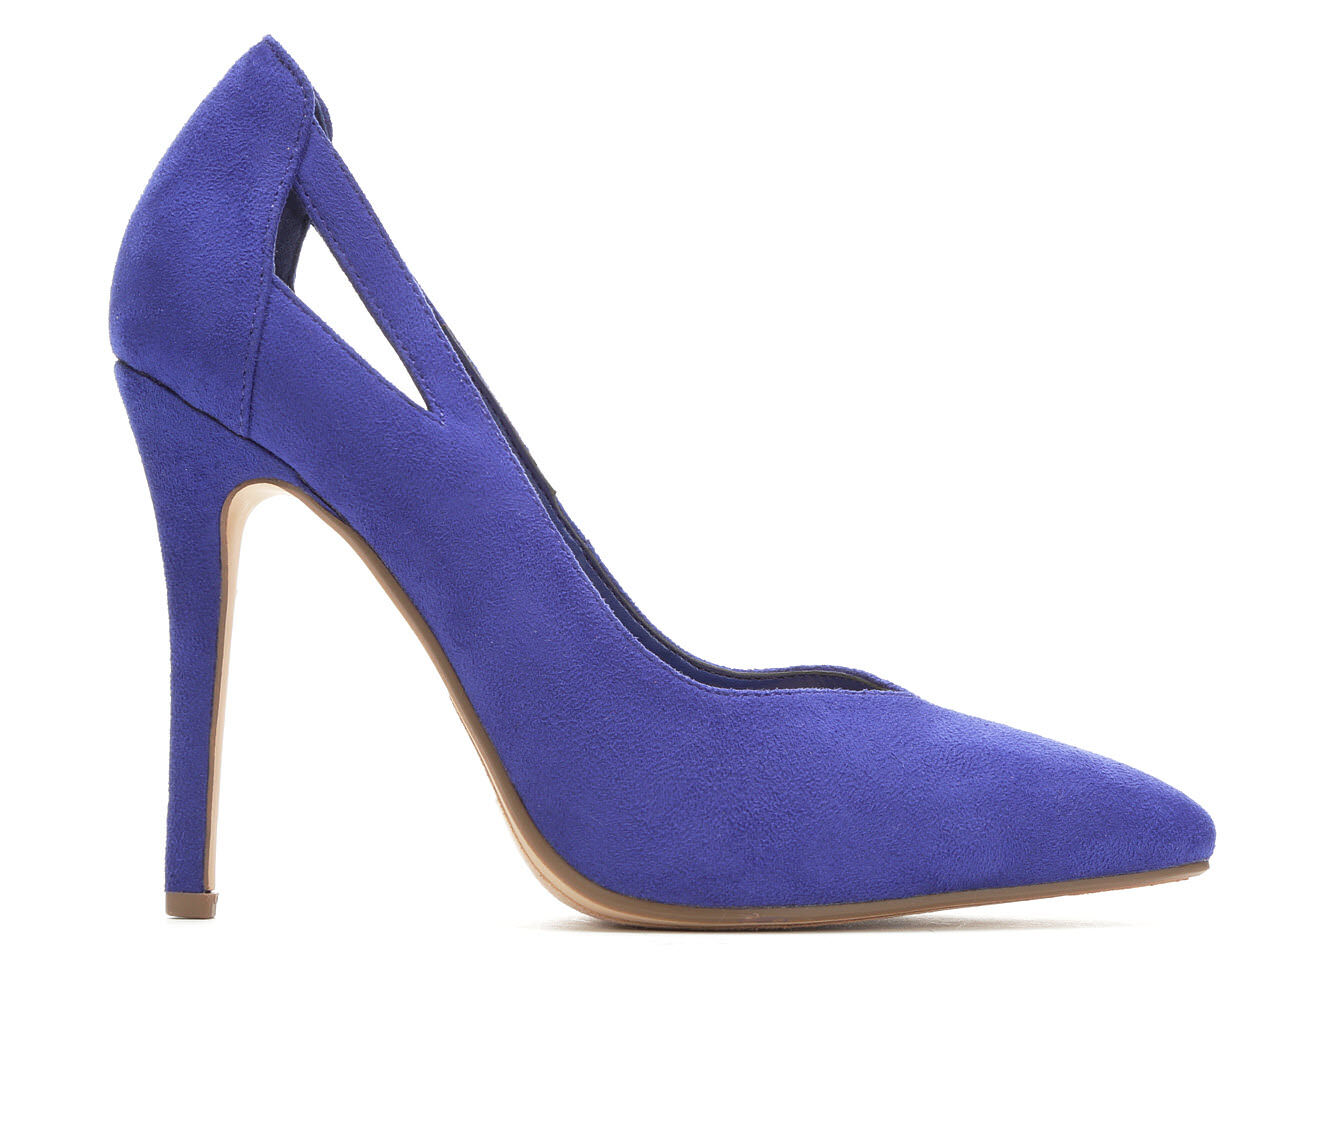 Women's Delicious Scarlet Pumps Elec Blue Micro